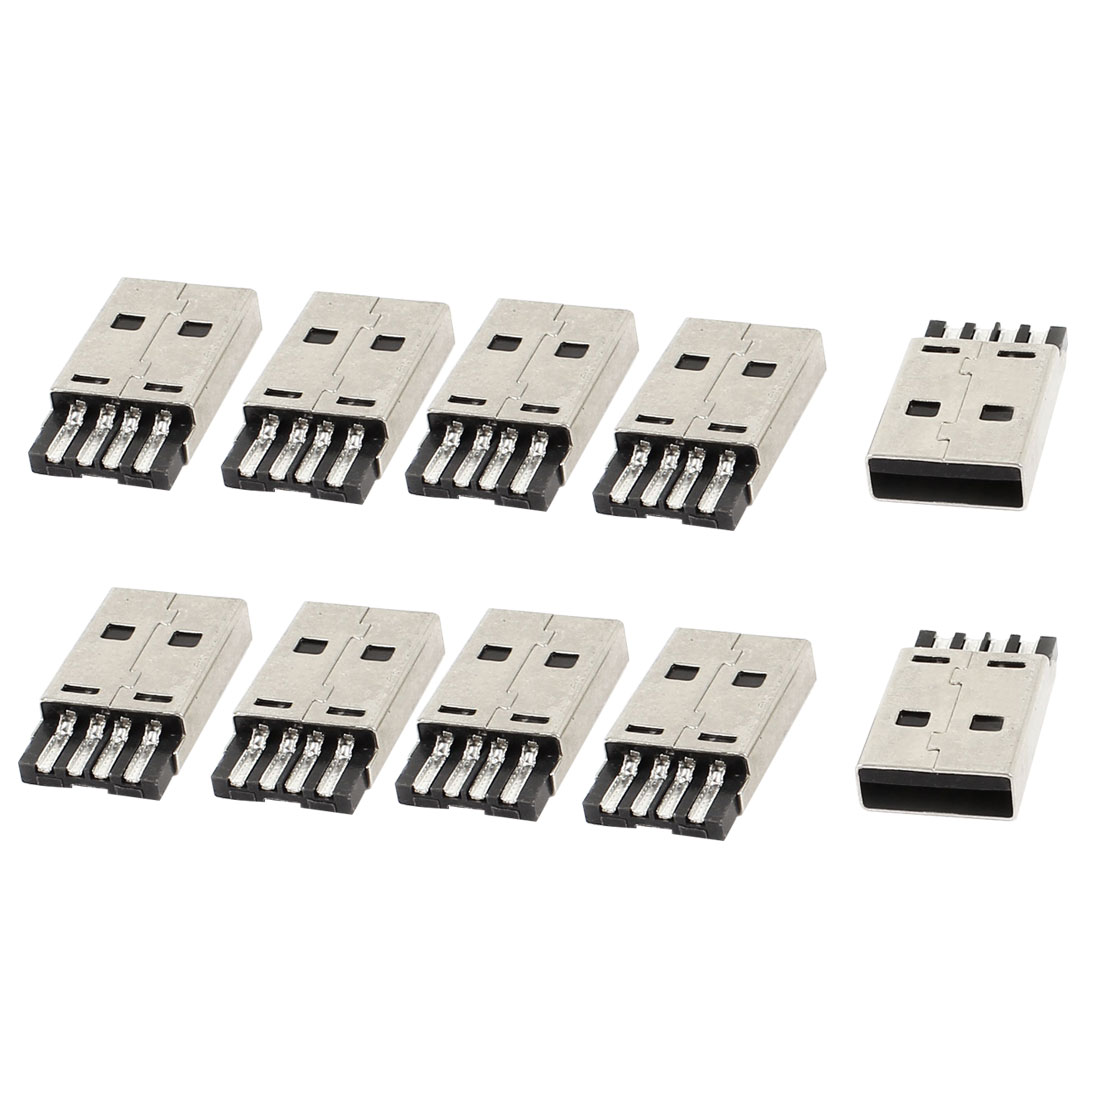 10 Pcs USB2.0 A Male 4 Pin Jack PCB Mounting Solder Connectors